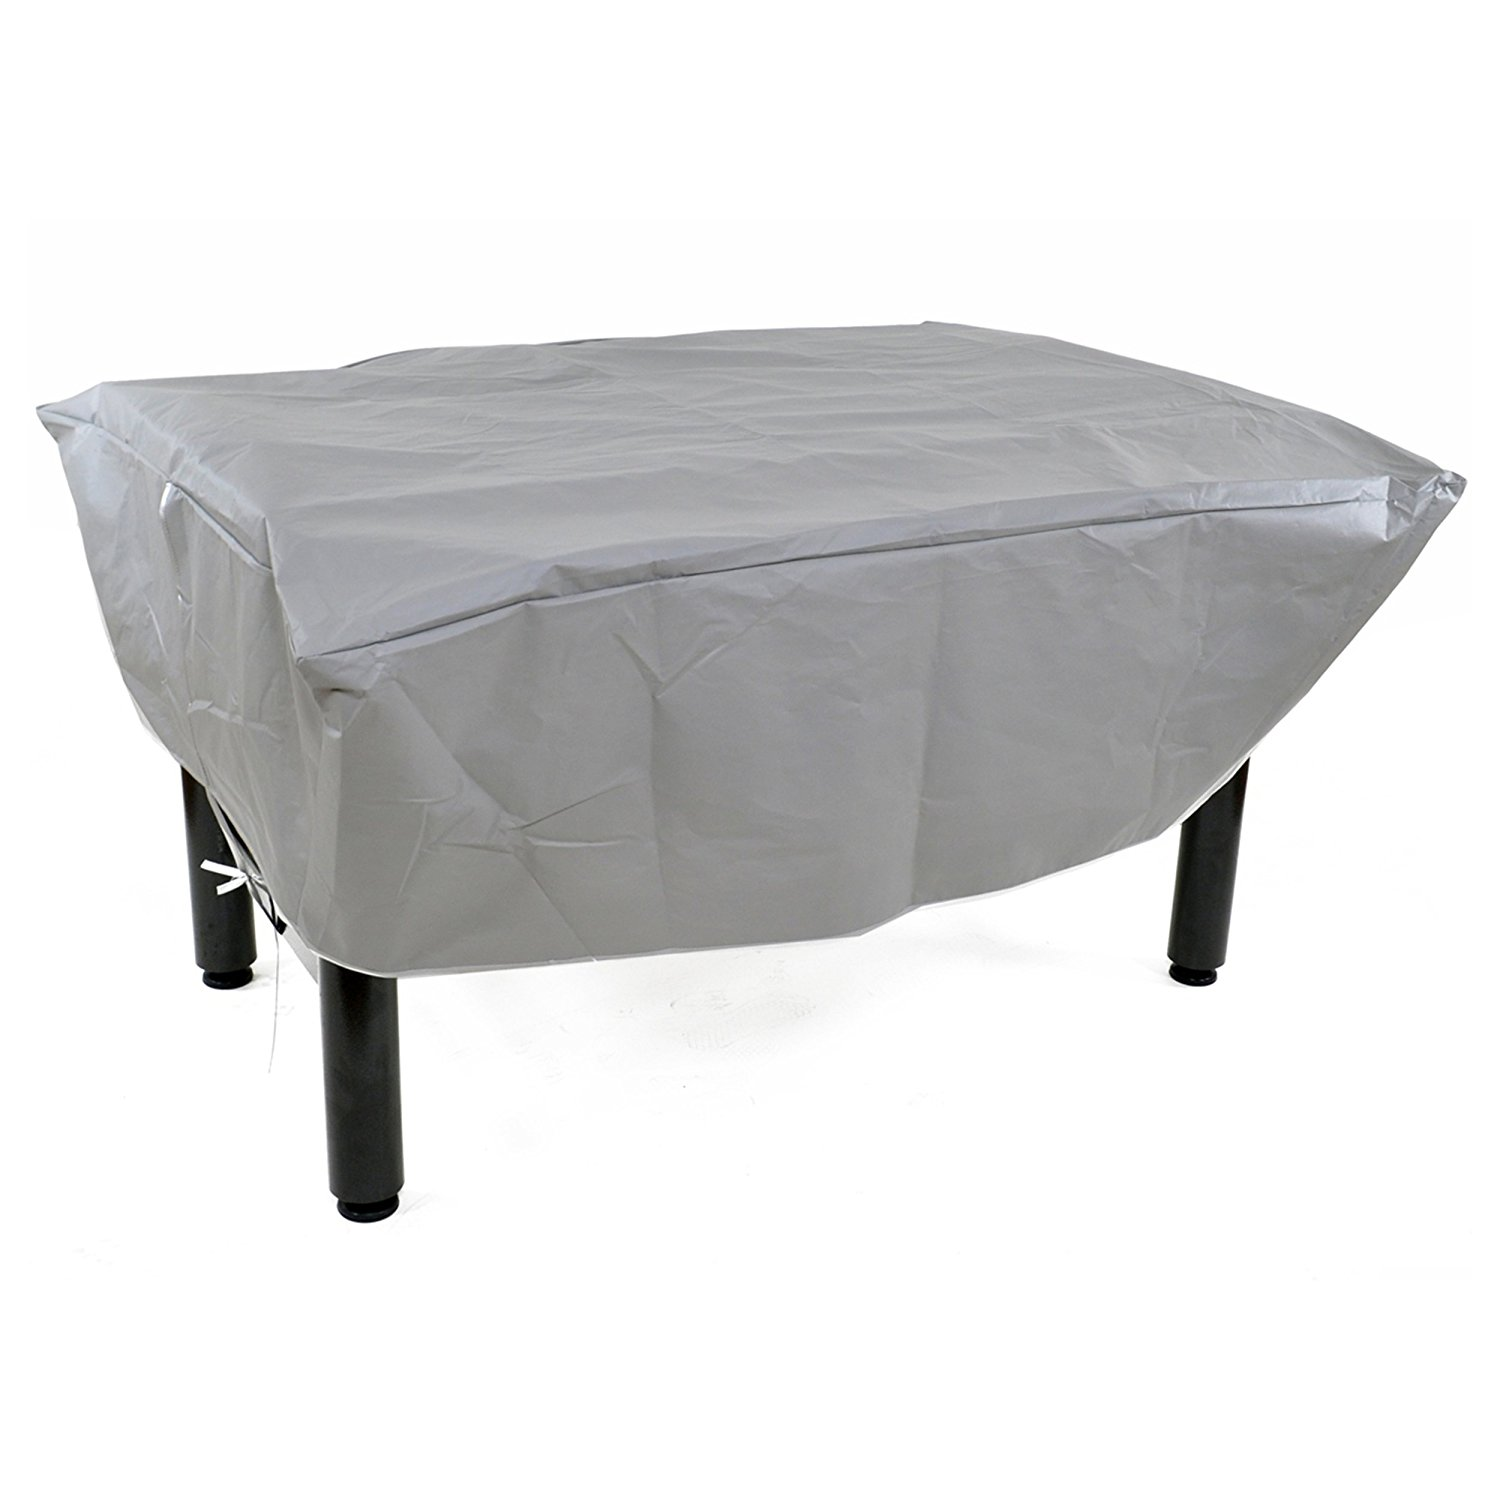 Kettler carrara with cover best outdoor ping pong tables for Table kettler